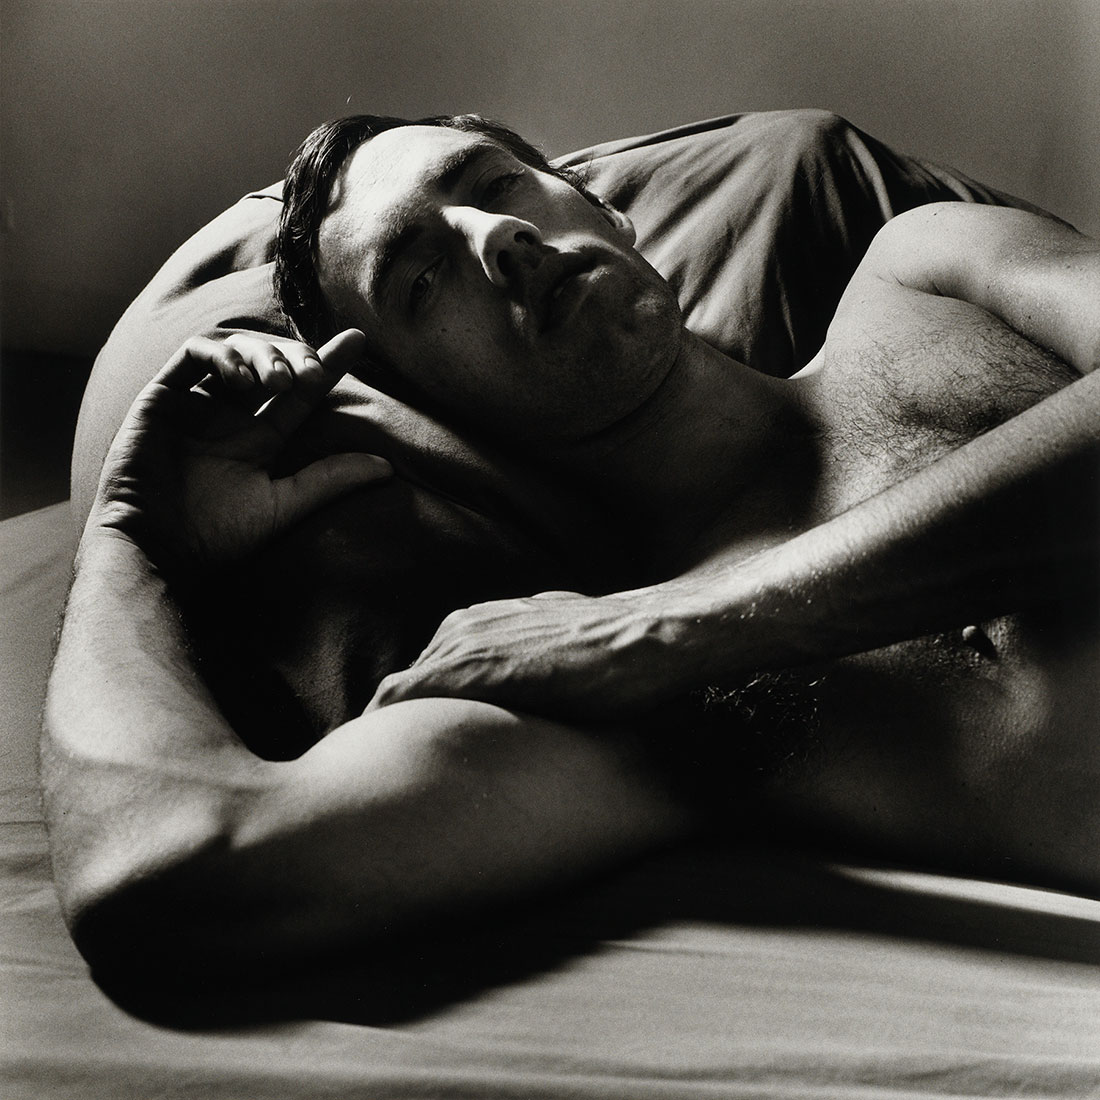 David Wojnarowicz Reclining (2)<br />1981<br />Peter Hujar<br />Tirage gélatino-argentique, The Morgan Library & Museum, achat en 2013 grâce au Charina Endowment Fund<br />© Peter Hujar Archive, LLC, courtesy Pace/MacGill Gallery, New York and Fraenkel Gallery, San Francisco